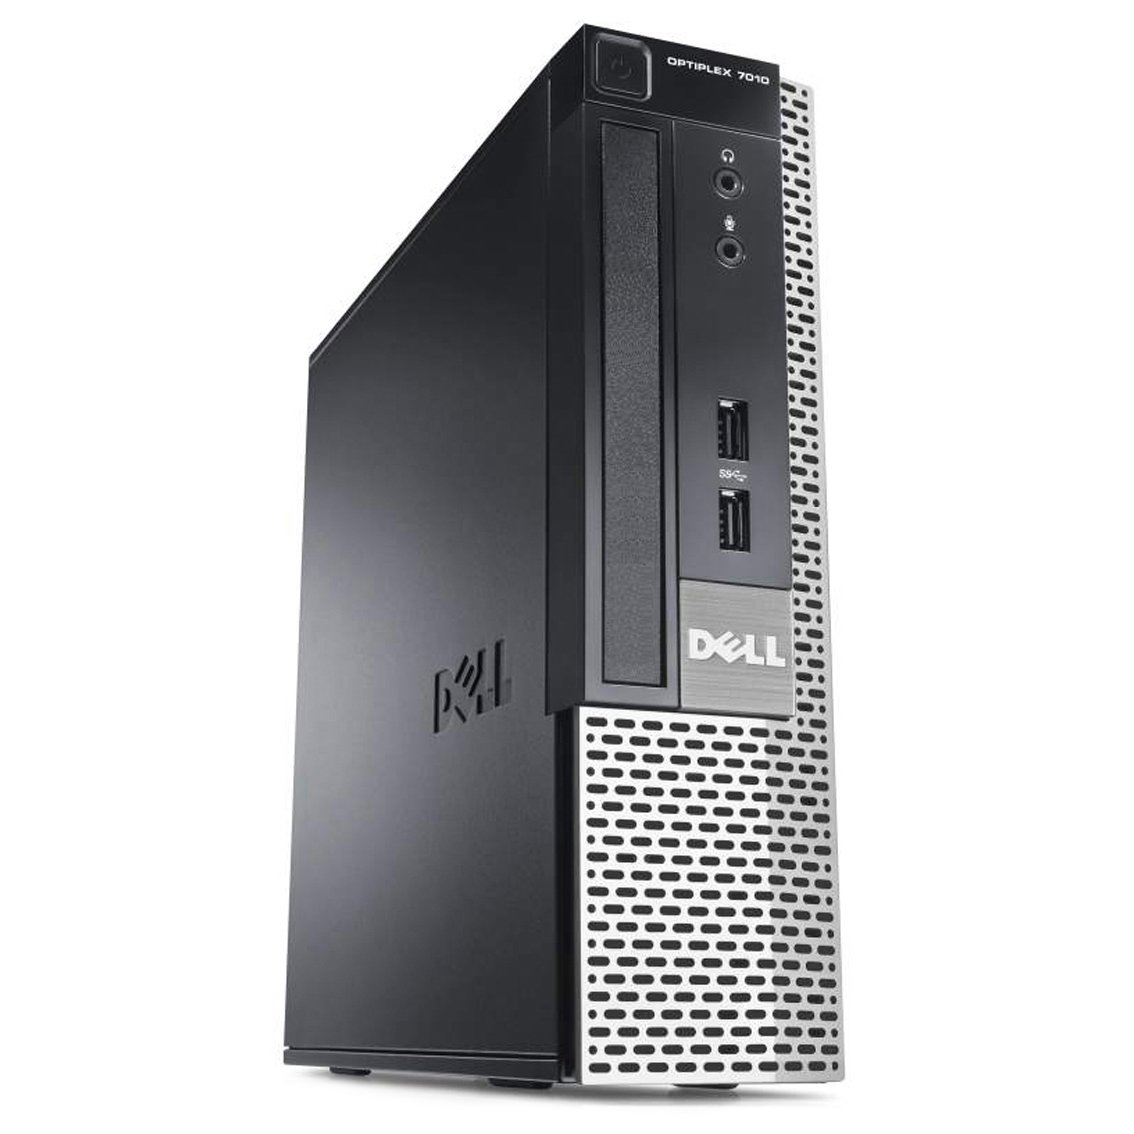 Refurbished Dell Desktop Optiplex 7010 USFF - Intel Core i3-3220 3.3GHz, 8GB DDR3 RAM, 120GB SSD, Windows 10 Pro by RefurbTek (Image #2)